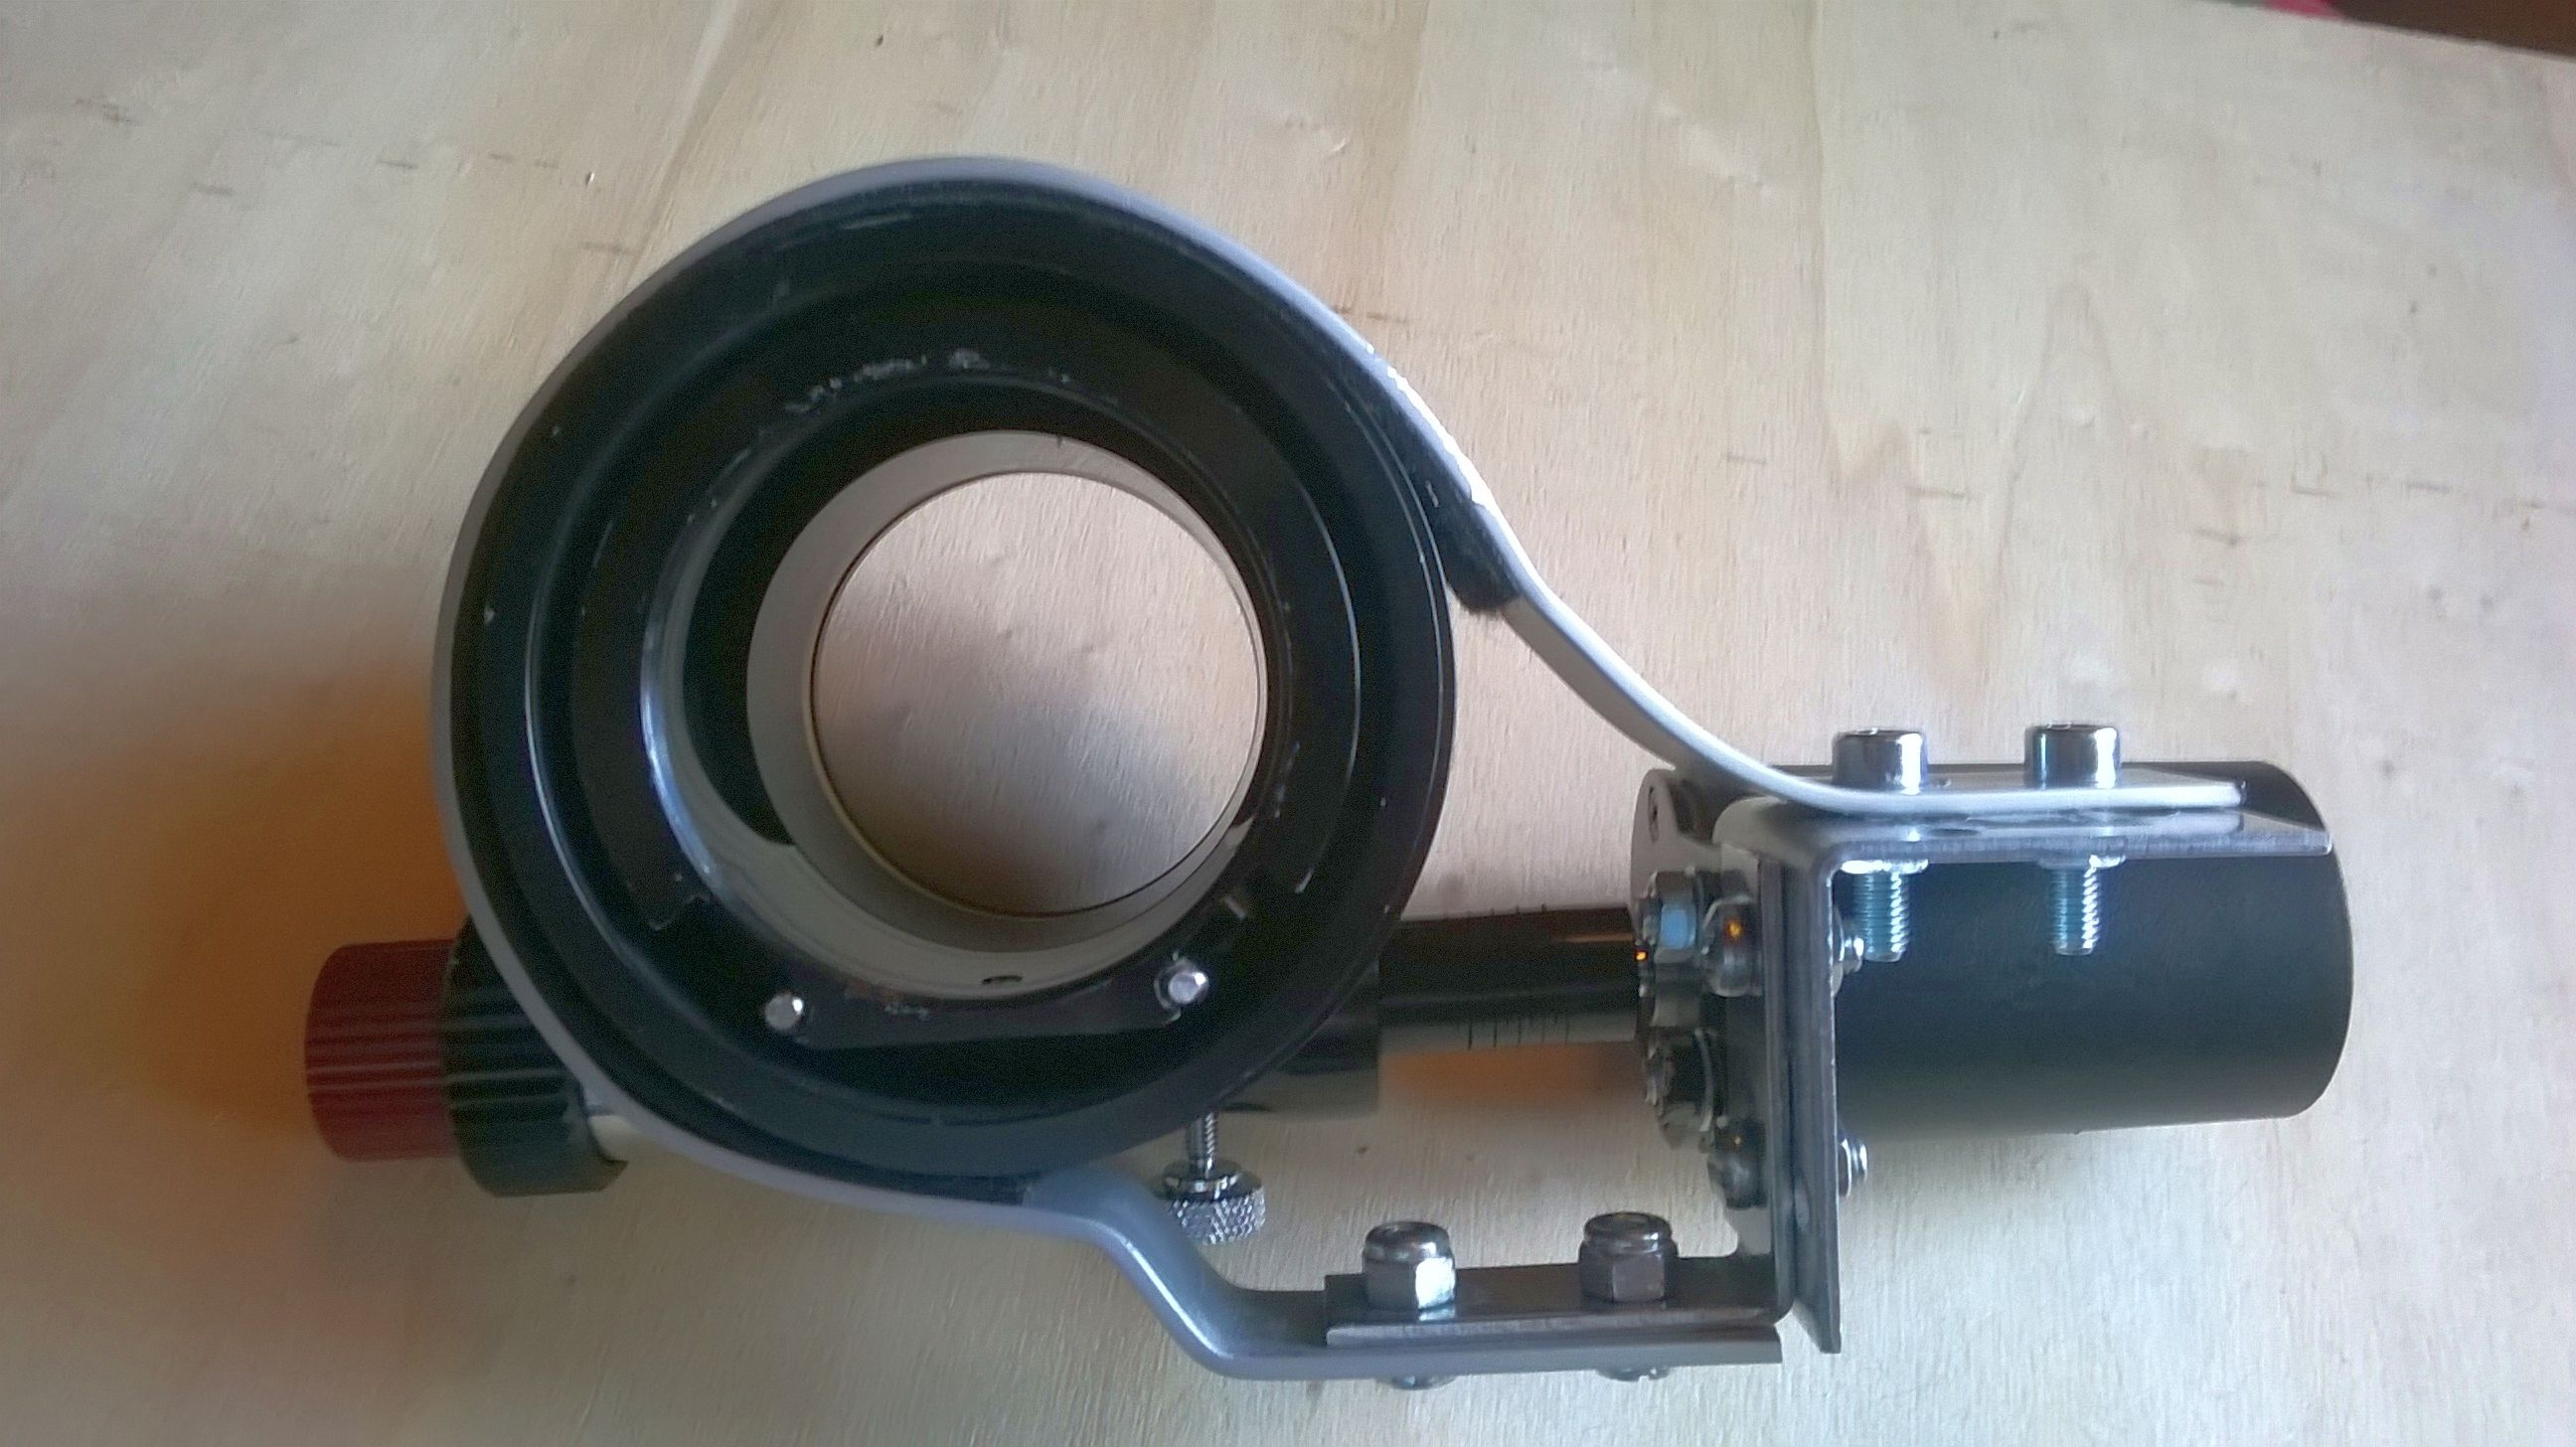 FT focuser motorization with Orion Accufocus - SolarChat!